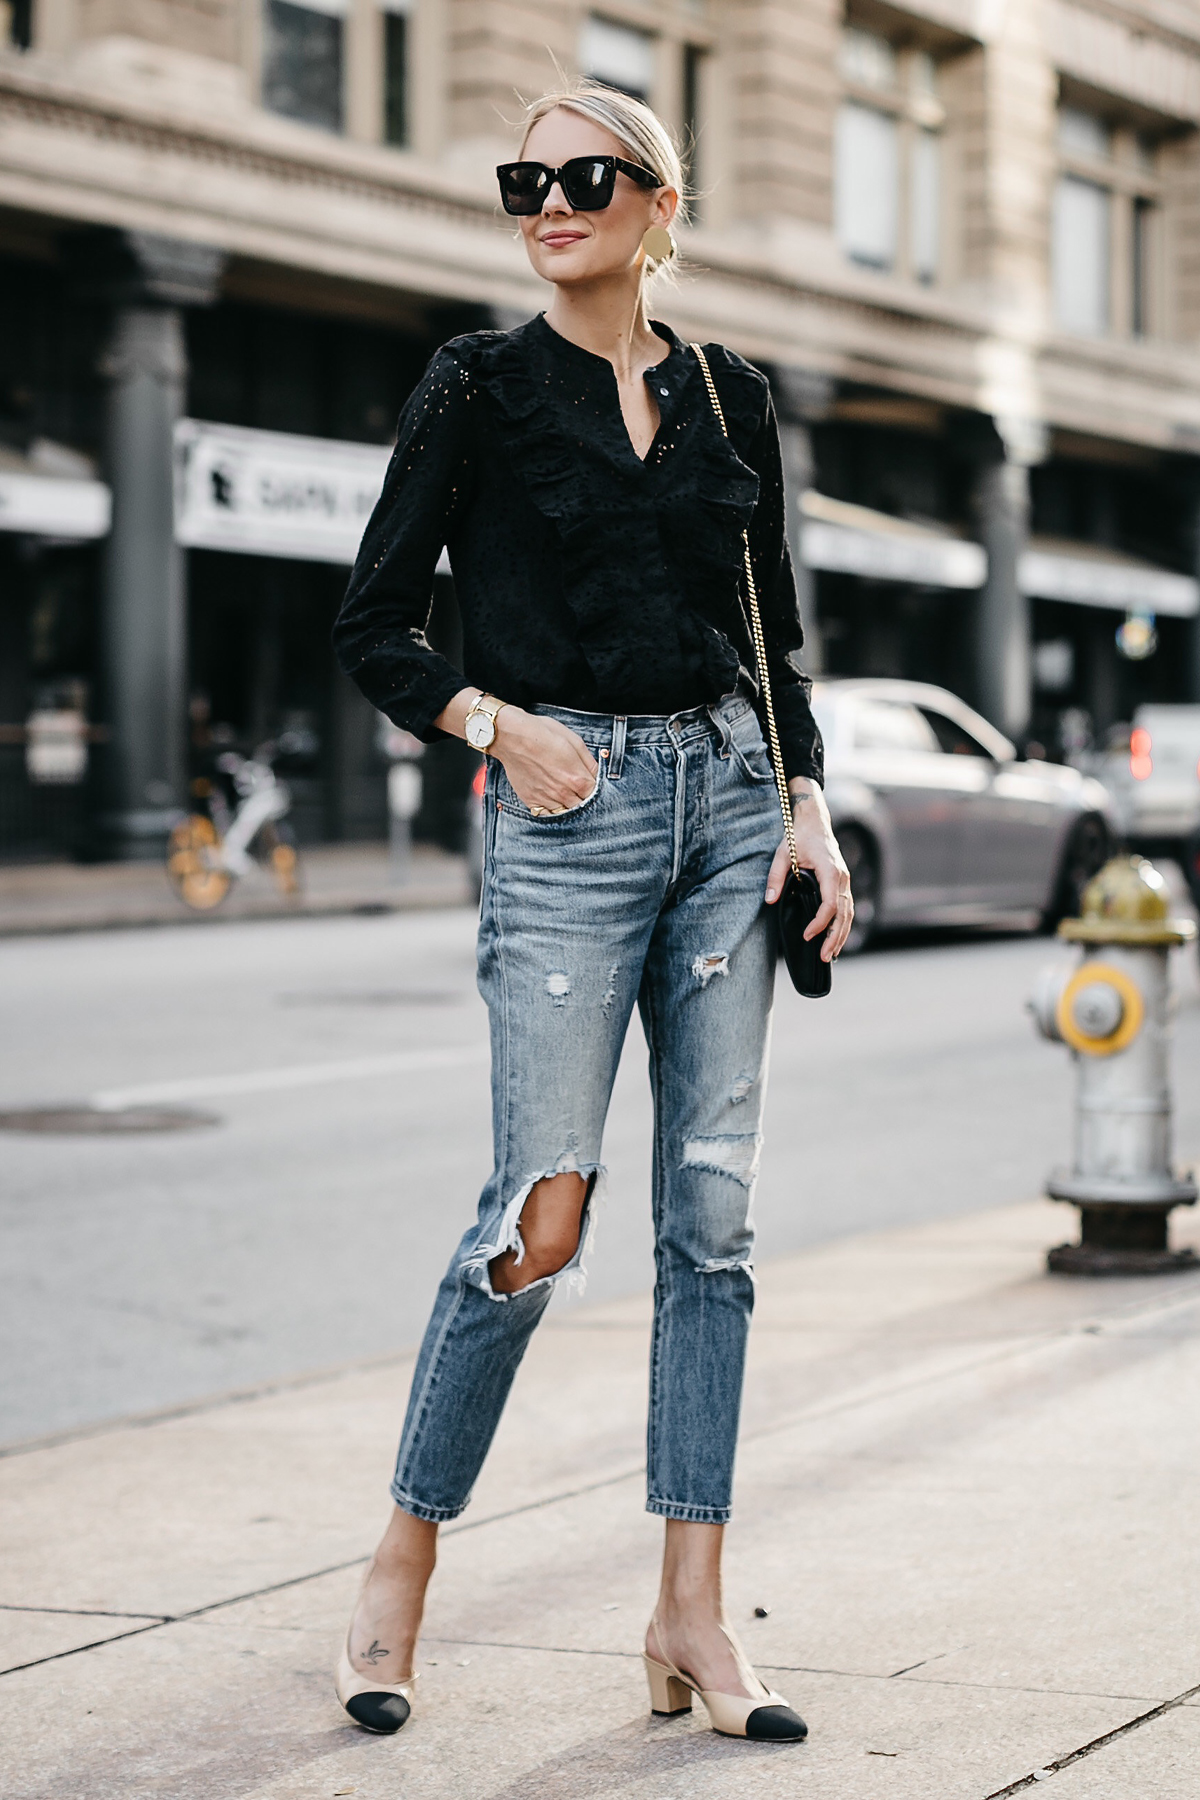 Blonde Woman Wearing Madewell Black Eyelet Blouse Levis Denim Ripped Jeans Chanel Slingbacks Fashion Jackson Dallas Blogger Fashion Blogger Street Style